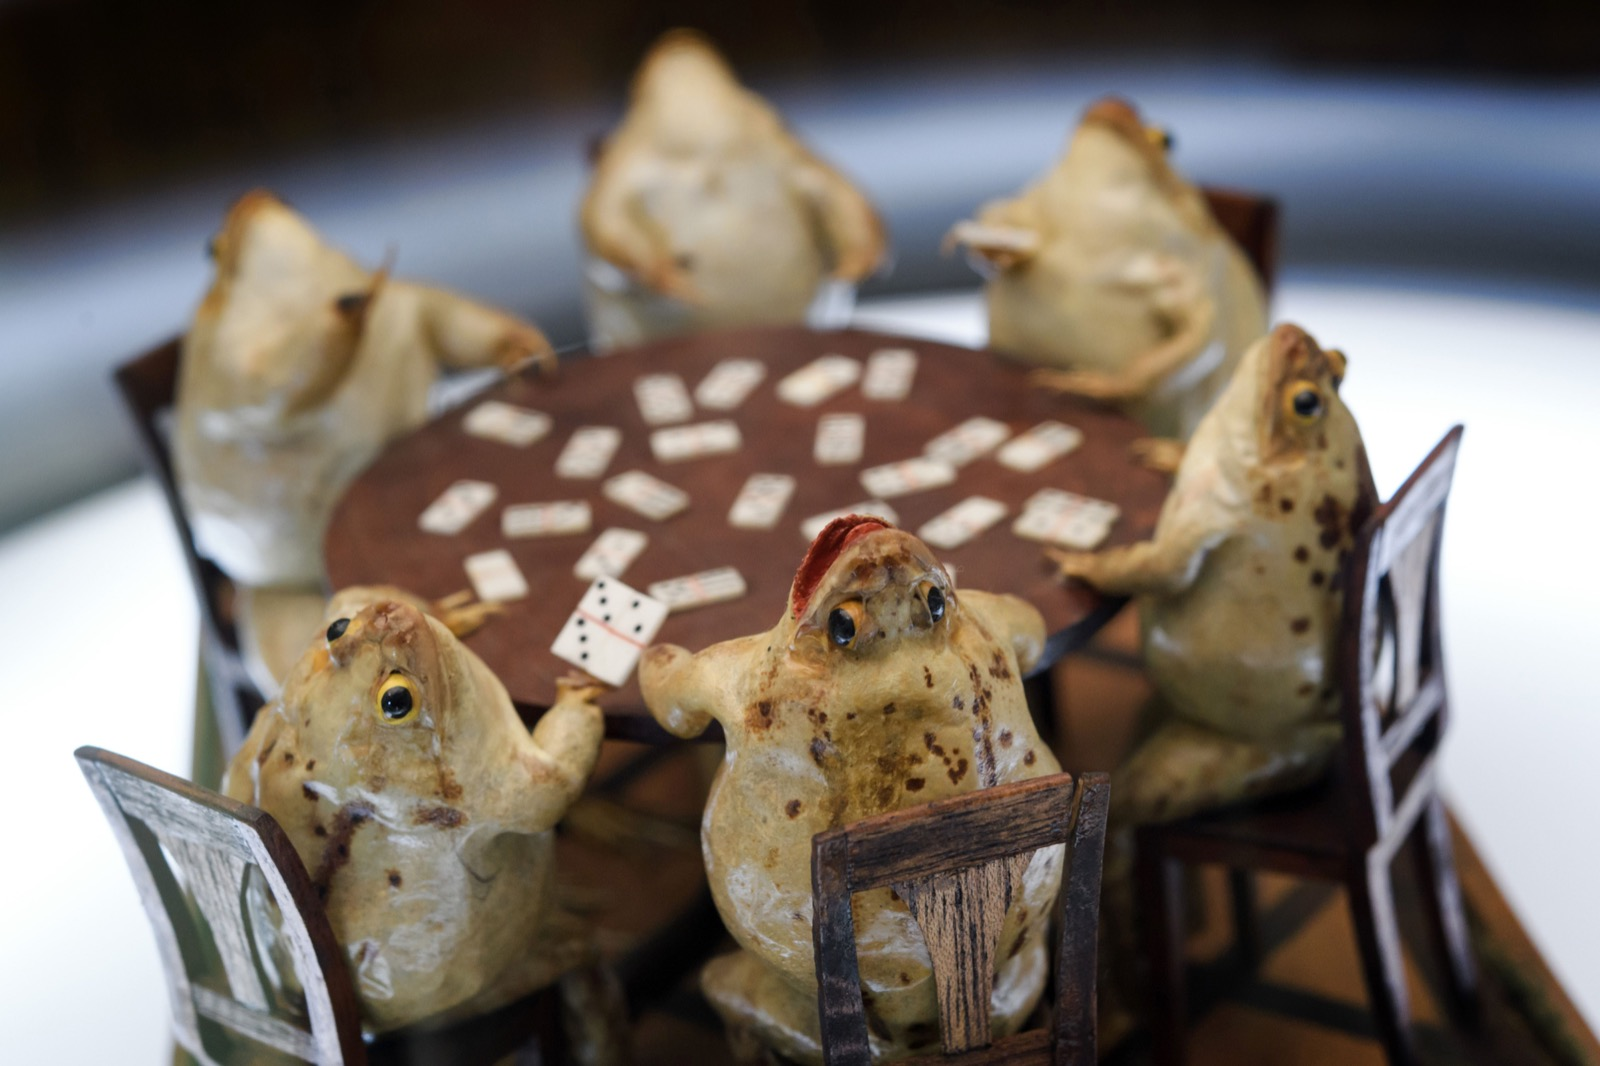 Frog-Playing-Card-at-Frog-Museum-in-Estavayer-le-Lac-western-Switzerland-FABRICE-COFFRINI-AFP-Getty-Images-thechicflaneuse